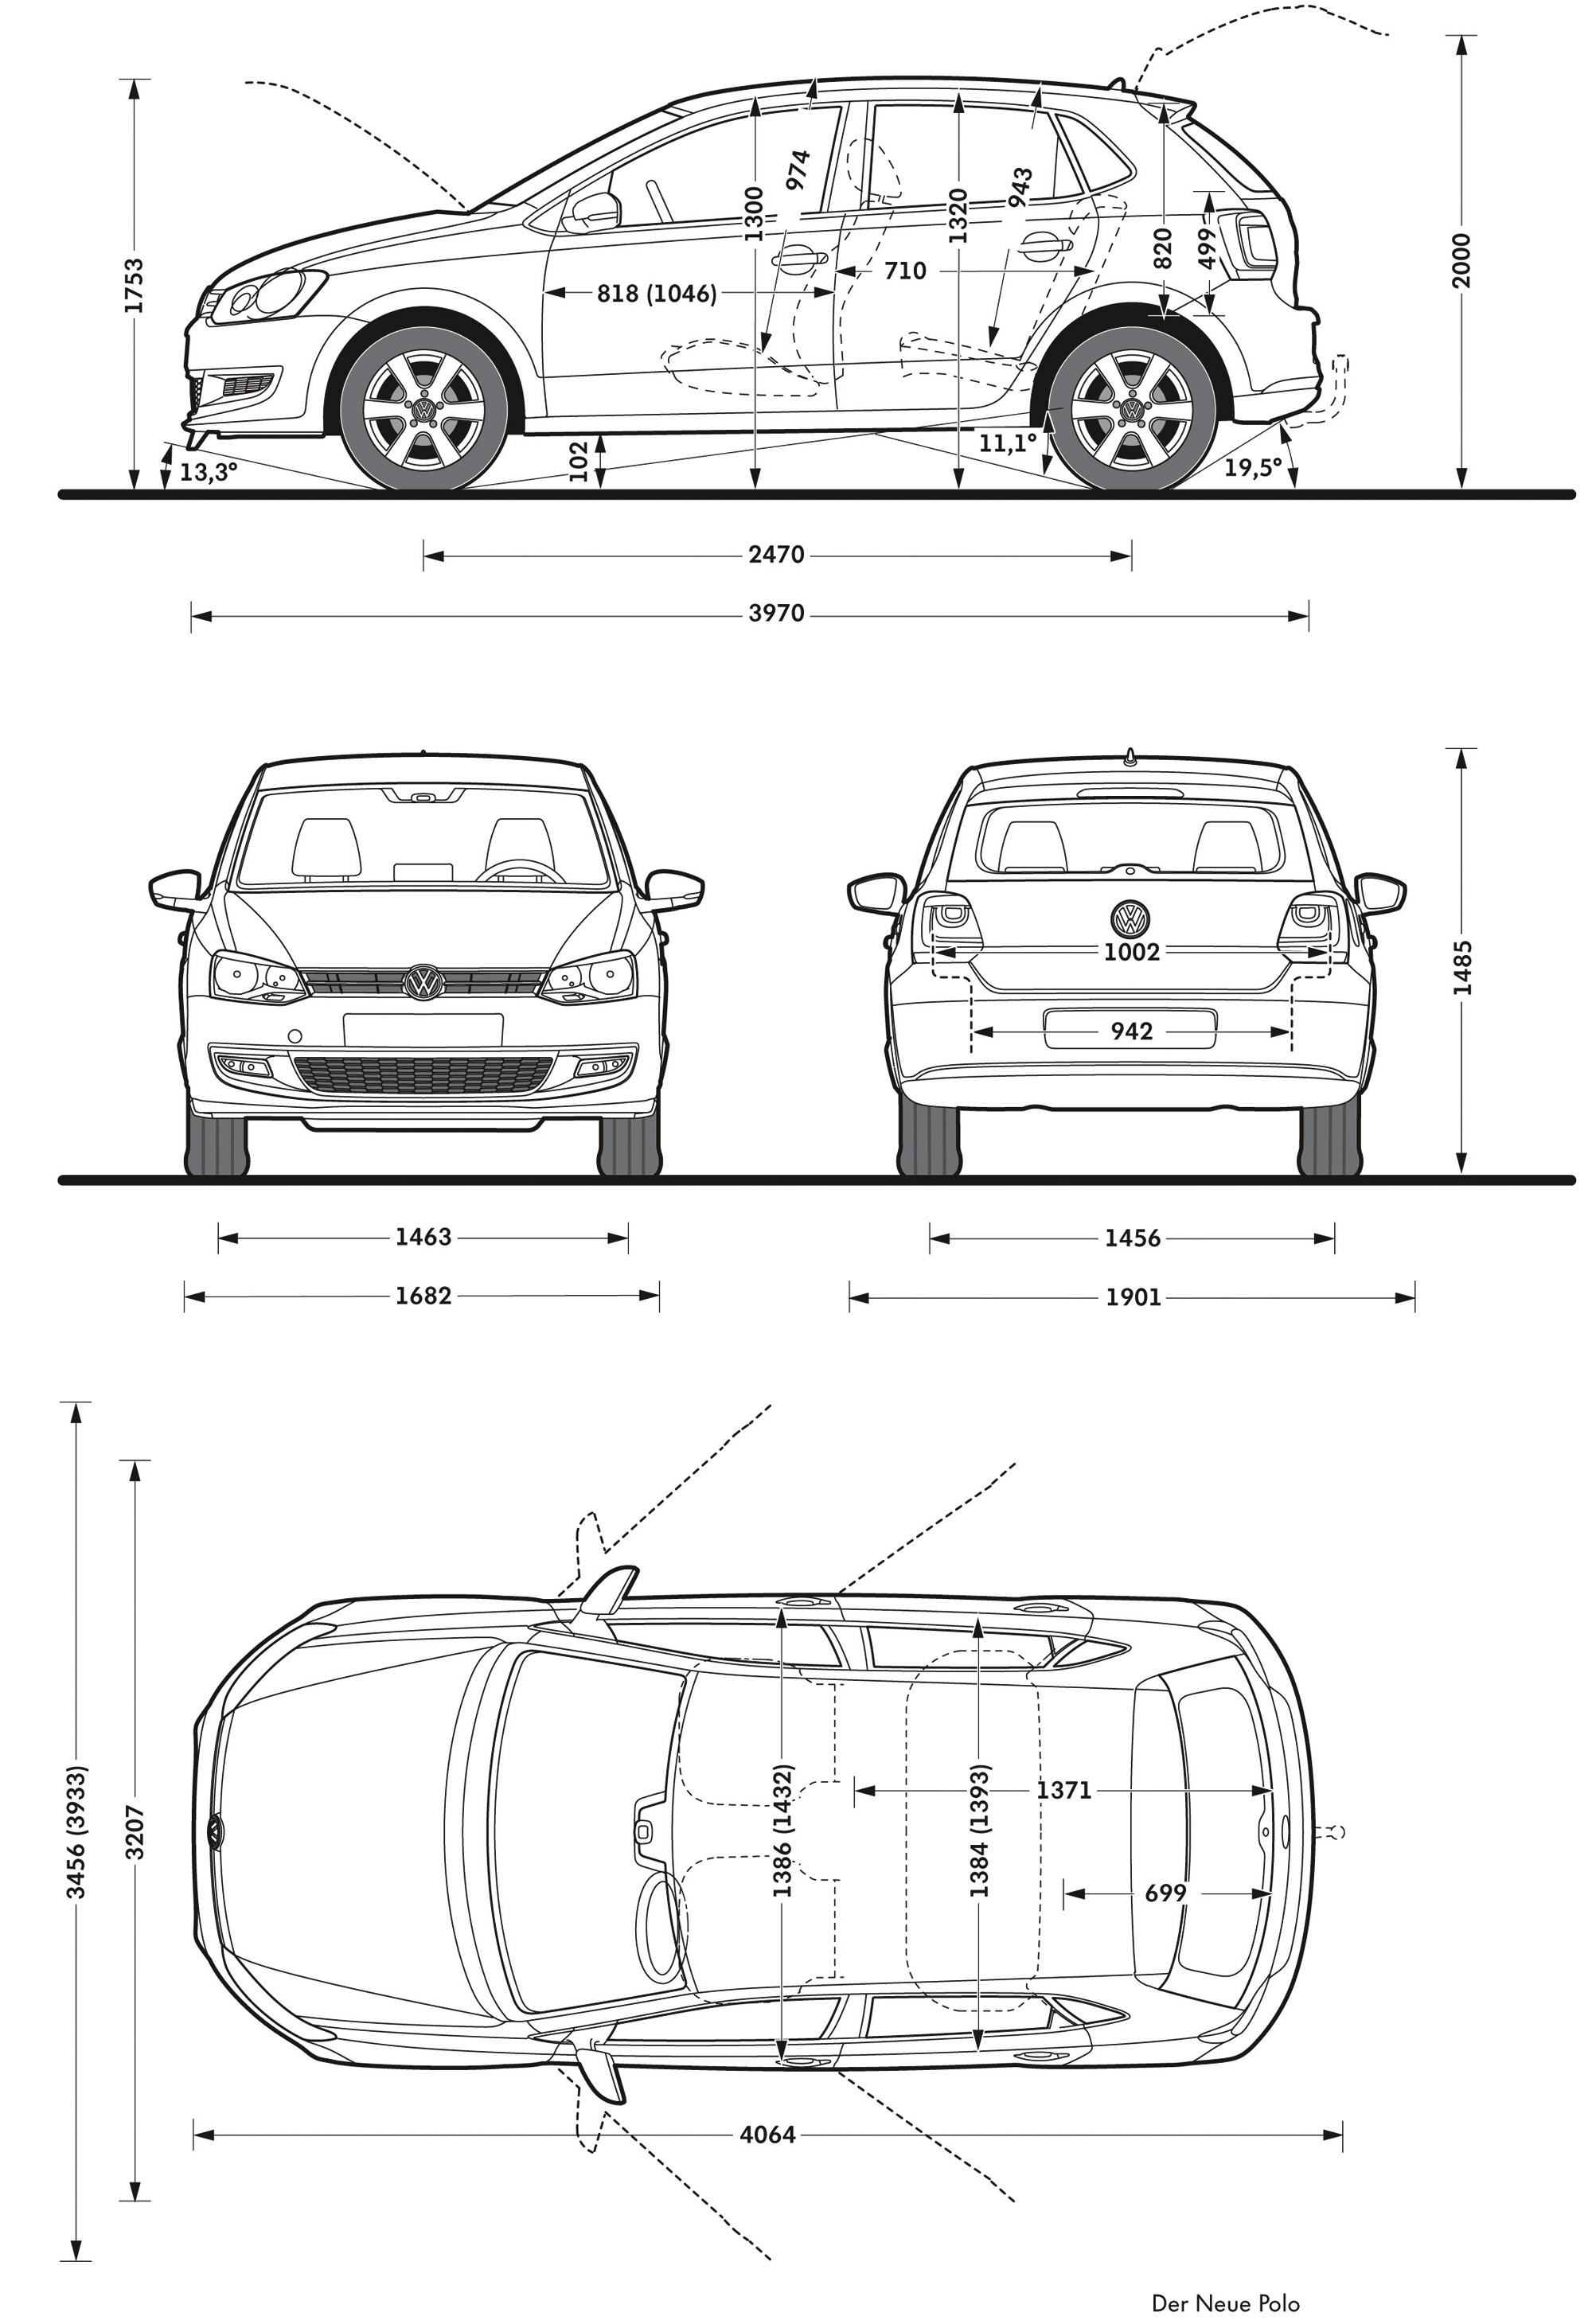 Showthread also The New Volkswagen Polo further Ebd Explained moreover Discussion T29896 ds721060 additionally Catia. on car front diagram